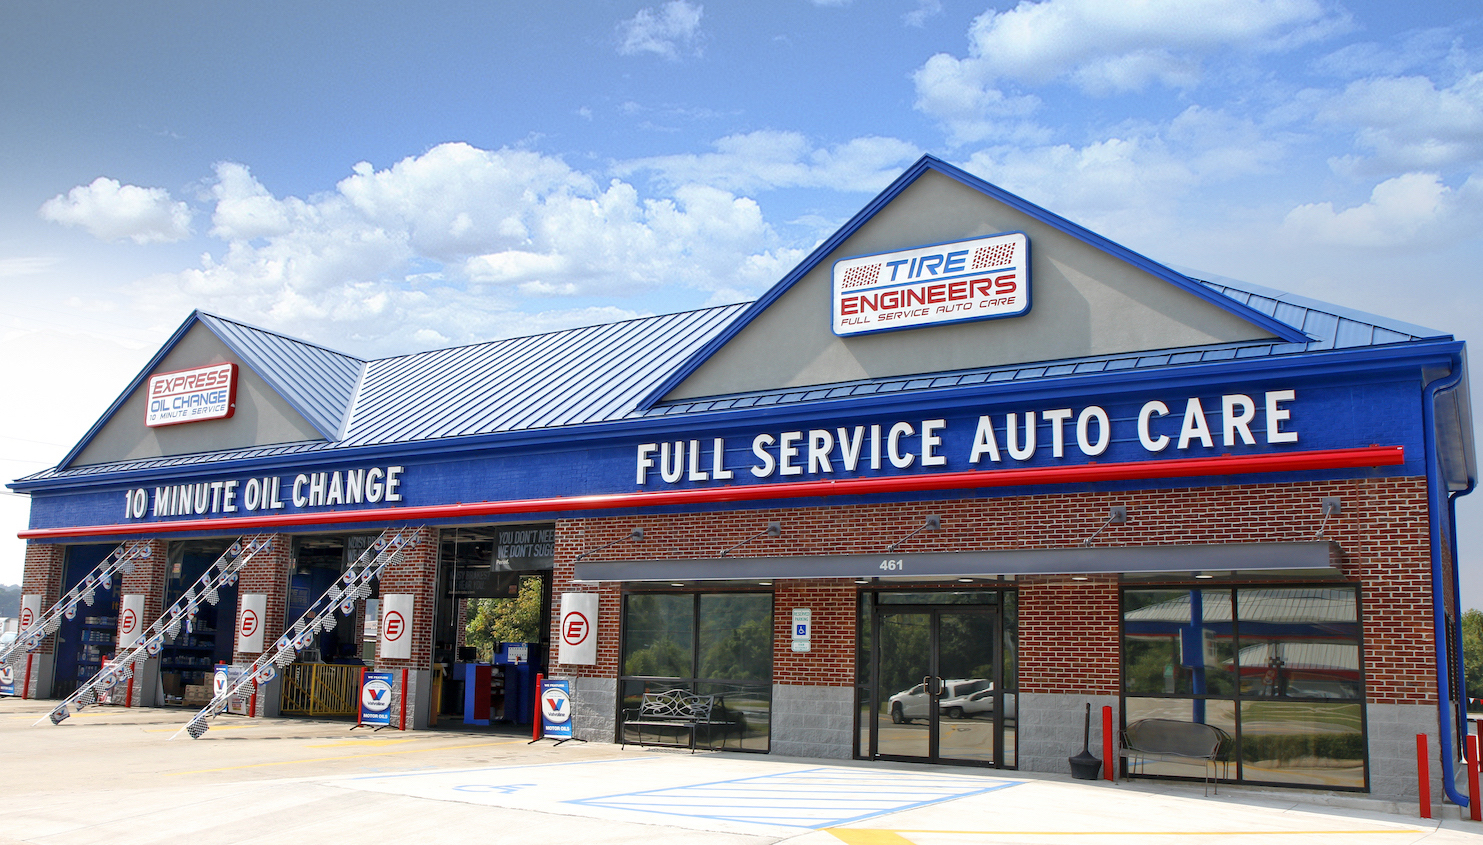 Express Oil Change & Tire Engineers Pelham, AL - Oak Mountain store